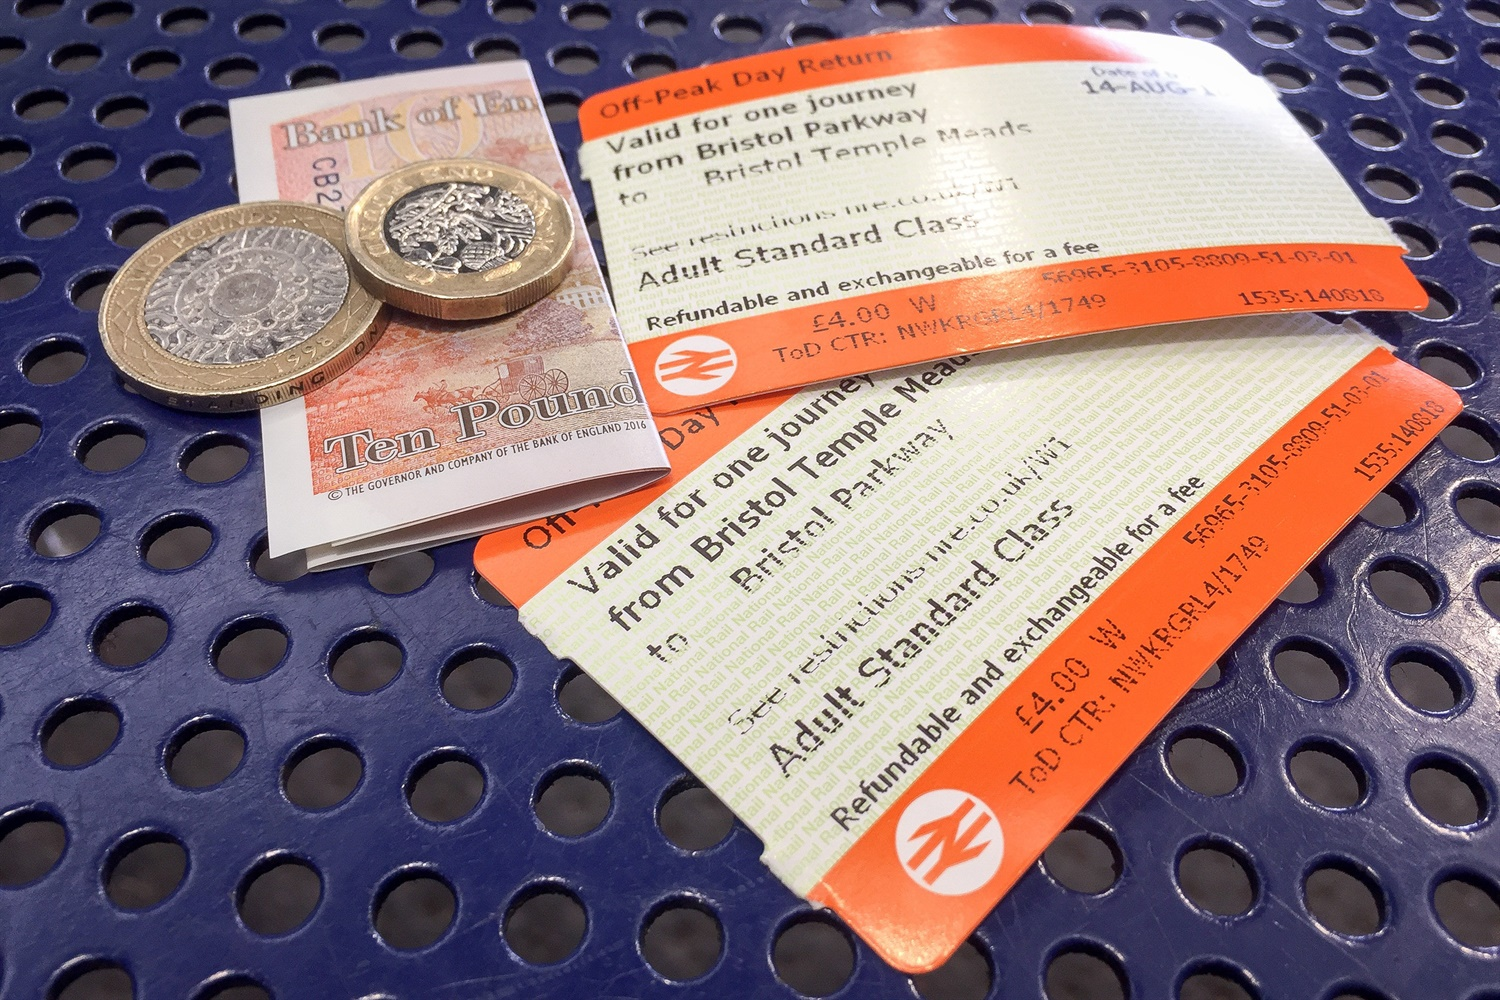 'Another kick in the teeth': Rail fares to rise by 3.1% in New Year